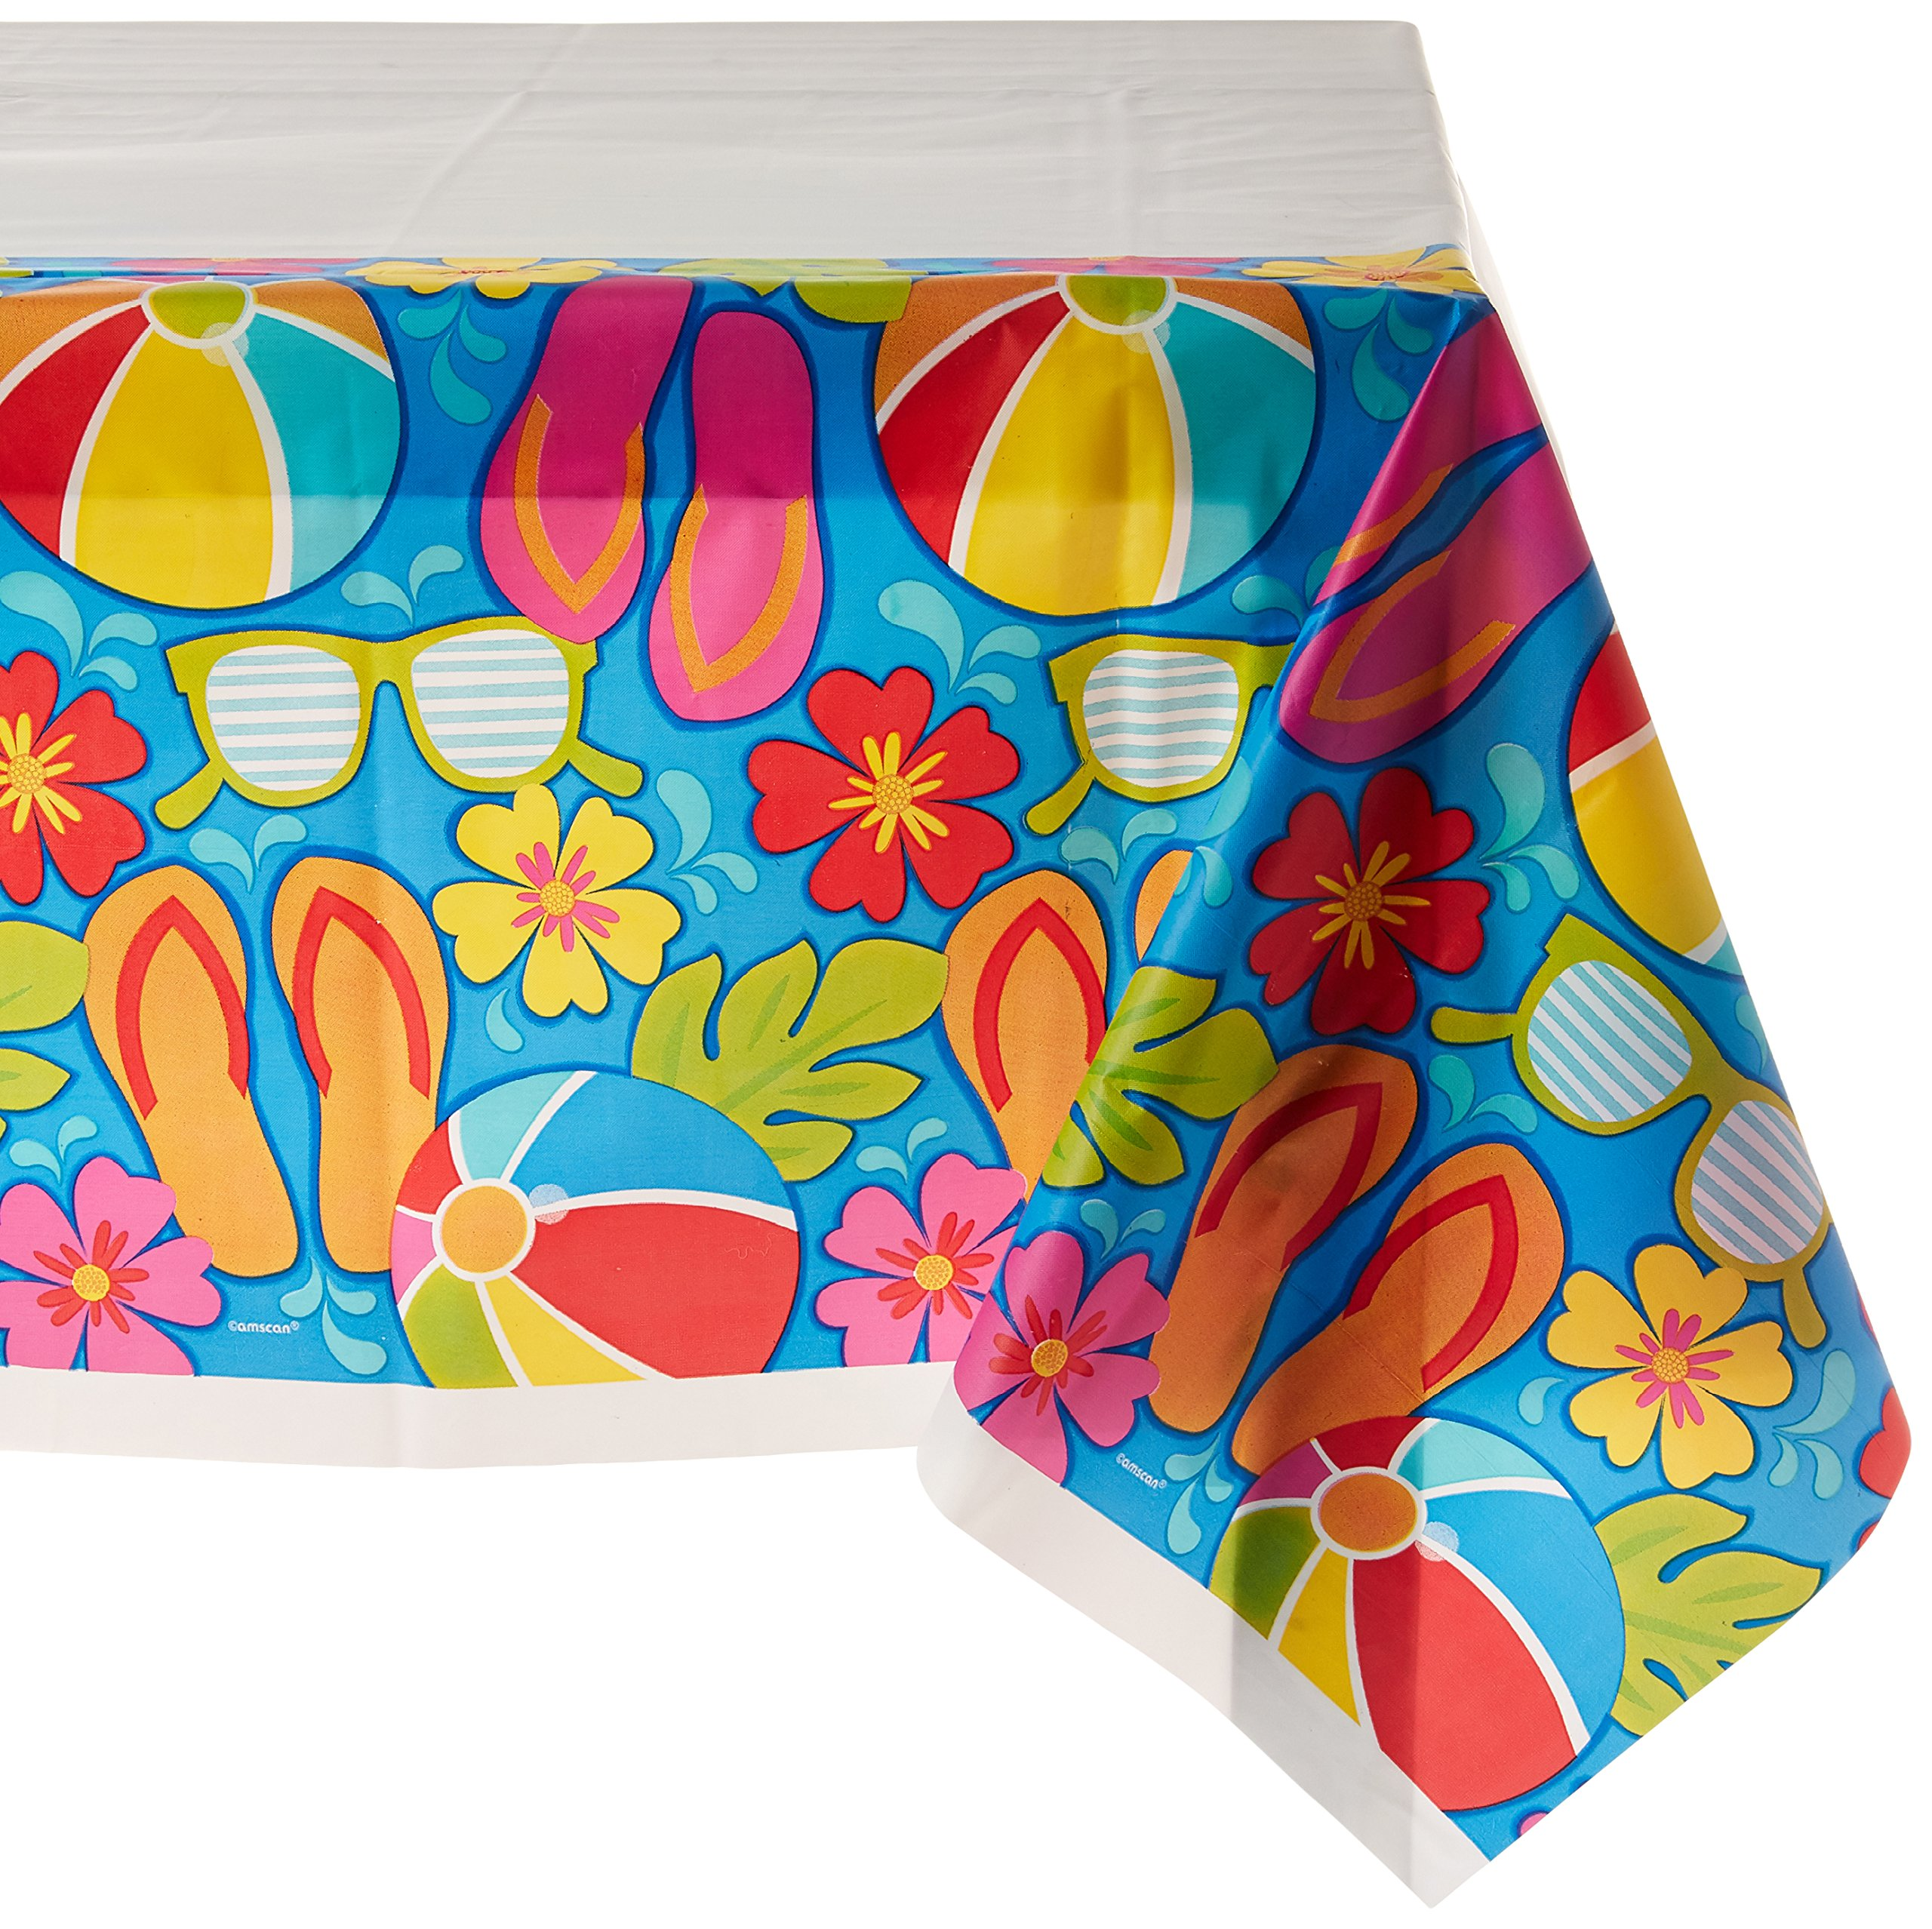 Amscan Summer Splash Table Cover, 1 Piece, Made from Plastic, Any Party, 54'' x 102'' by